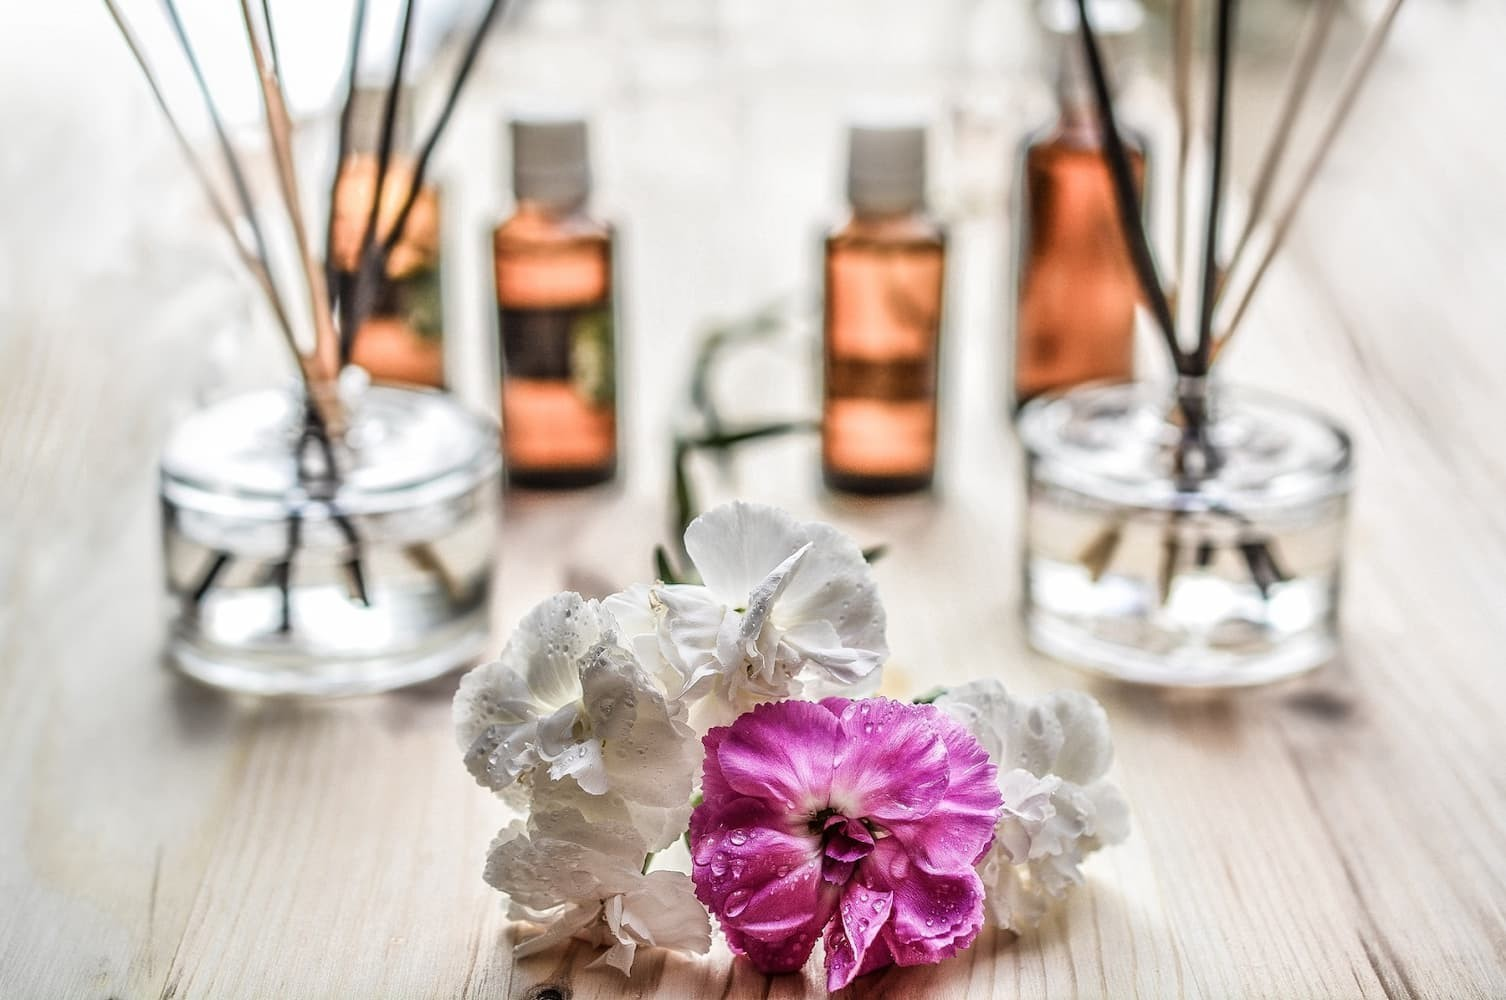 Aroma - therapy